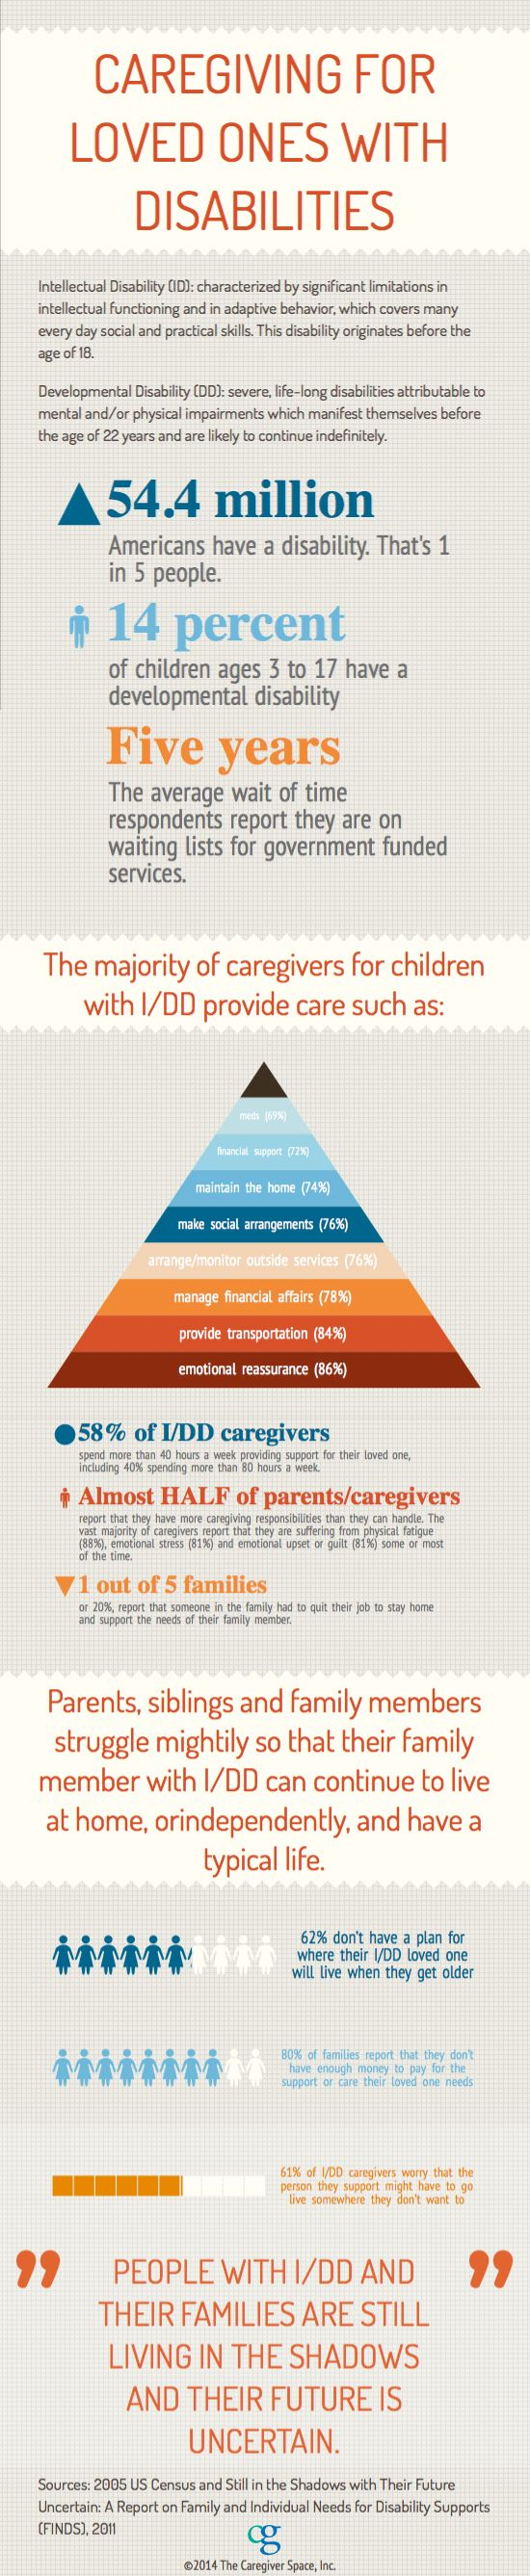 Caregivers for Loved Ones with Disabilities [INFOGRAPHIC] | Created by The Caregiver Space